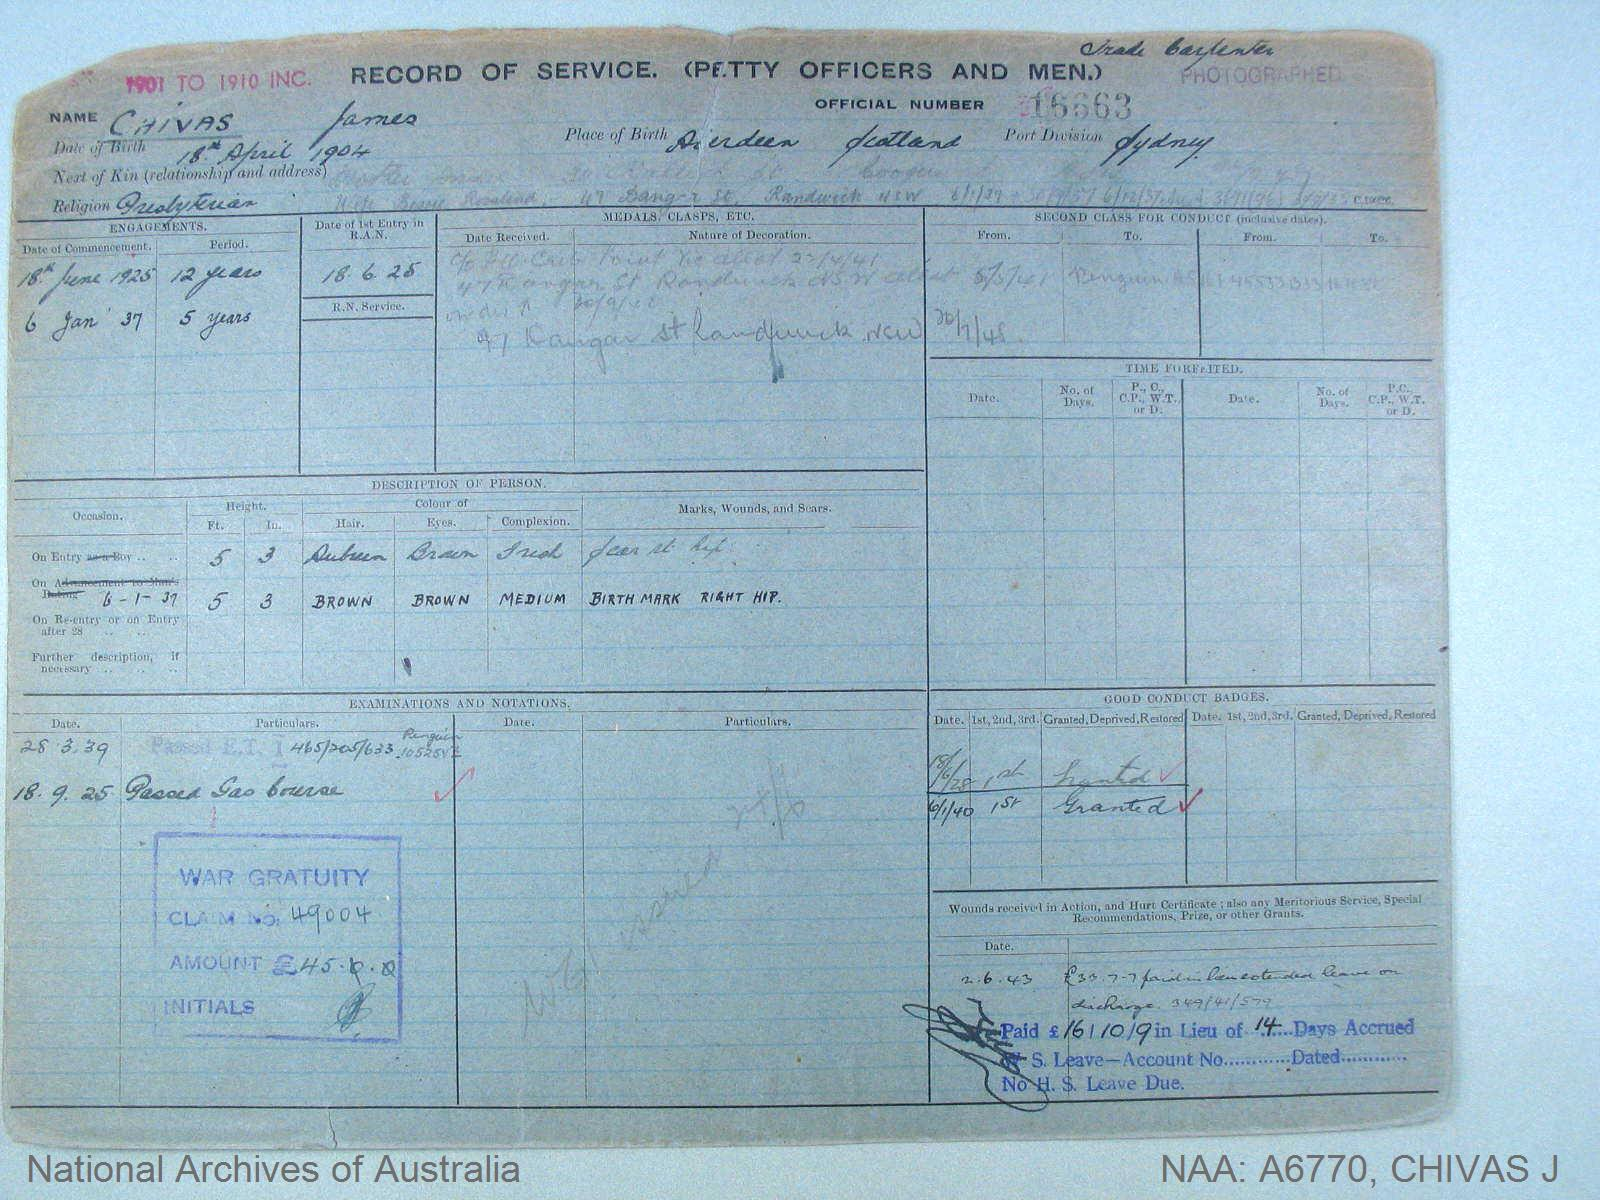 CHIVAS JAMES : Service Number - 16663 : Date of birth - 18 Apr 1904 : Place of birth - ABERDEEN SCOTLAND : Place of enlistment - SYDNEY : Next of Kin - CHIVAS BETTY